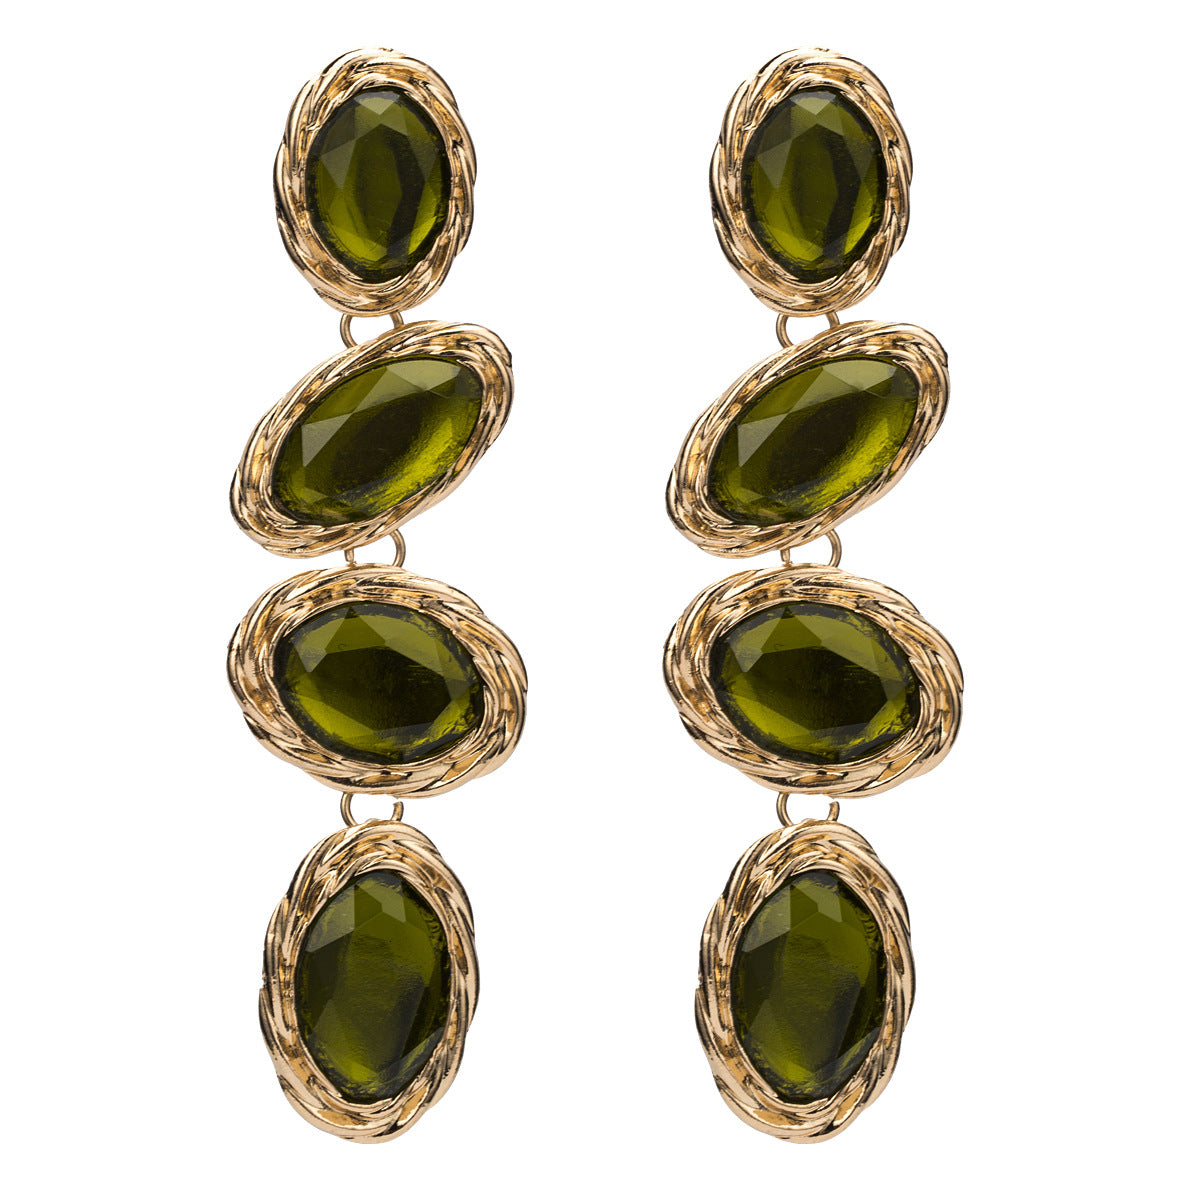 Dramatic drop earrings